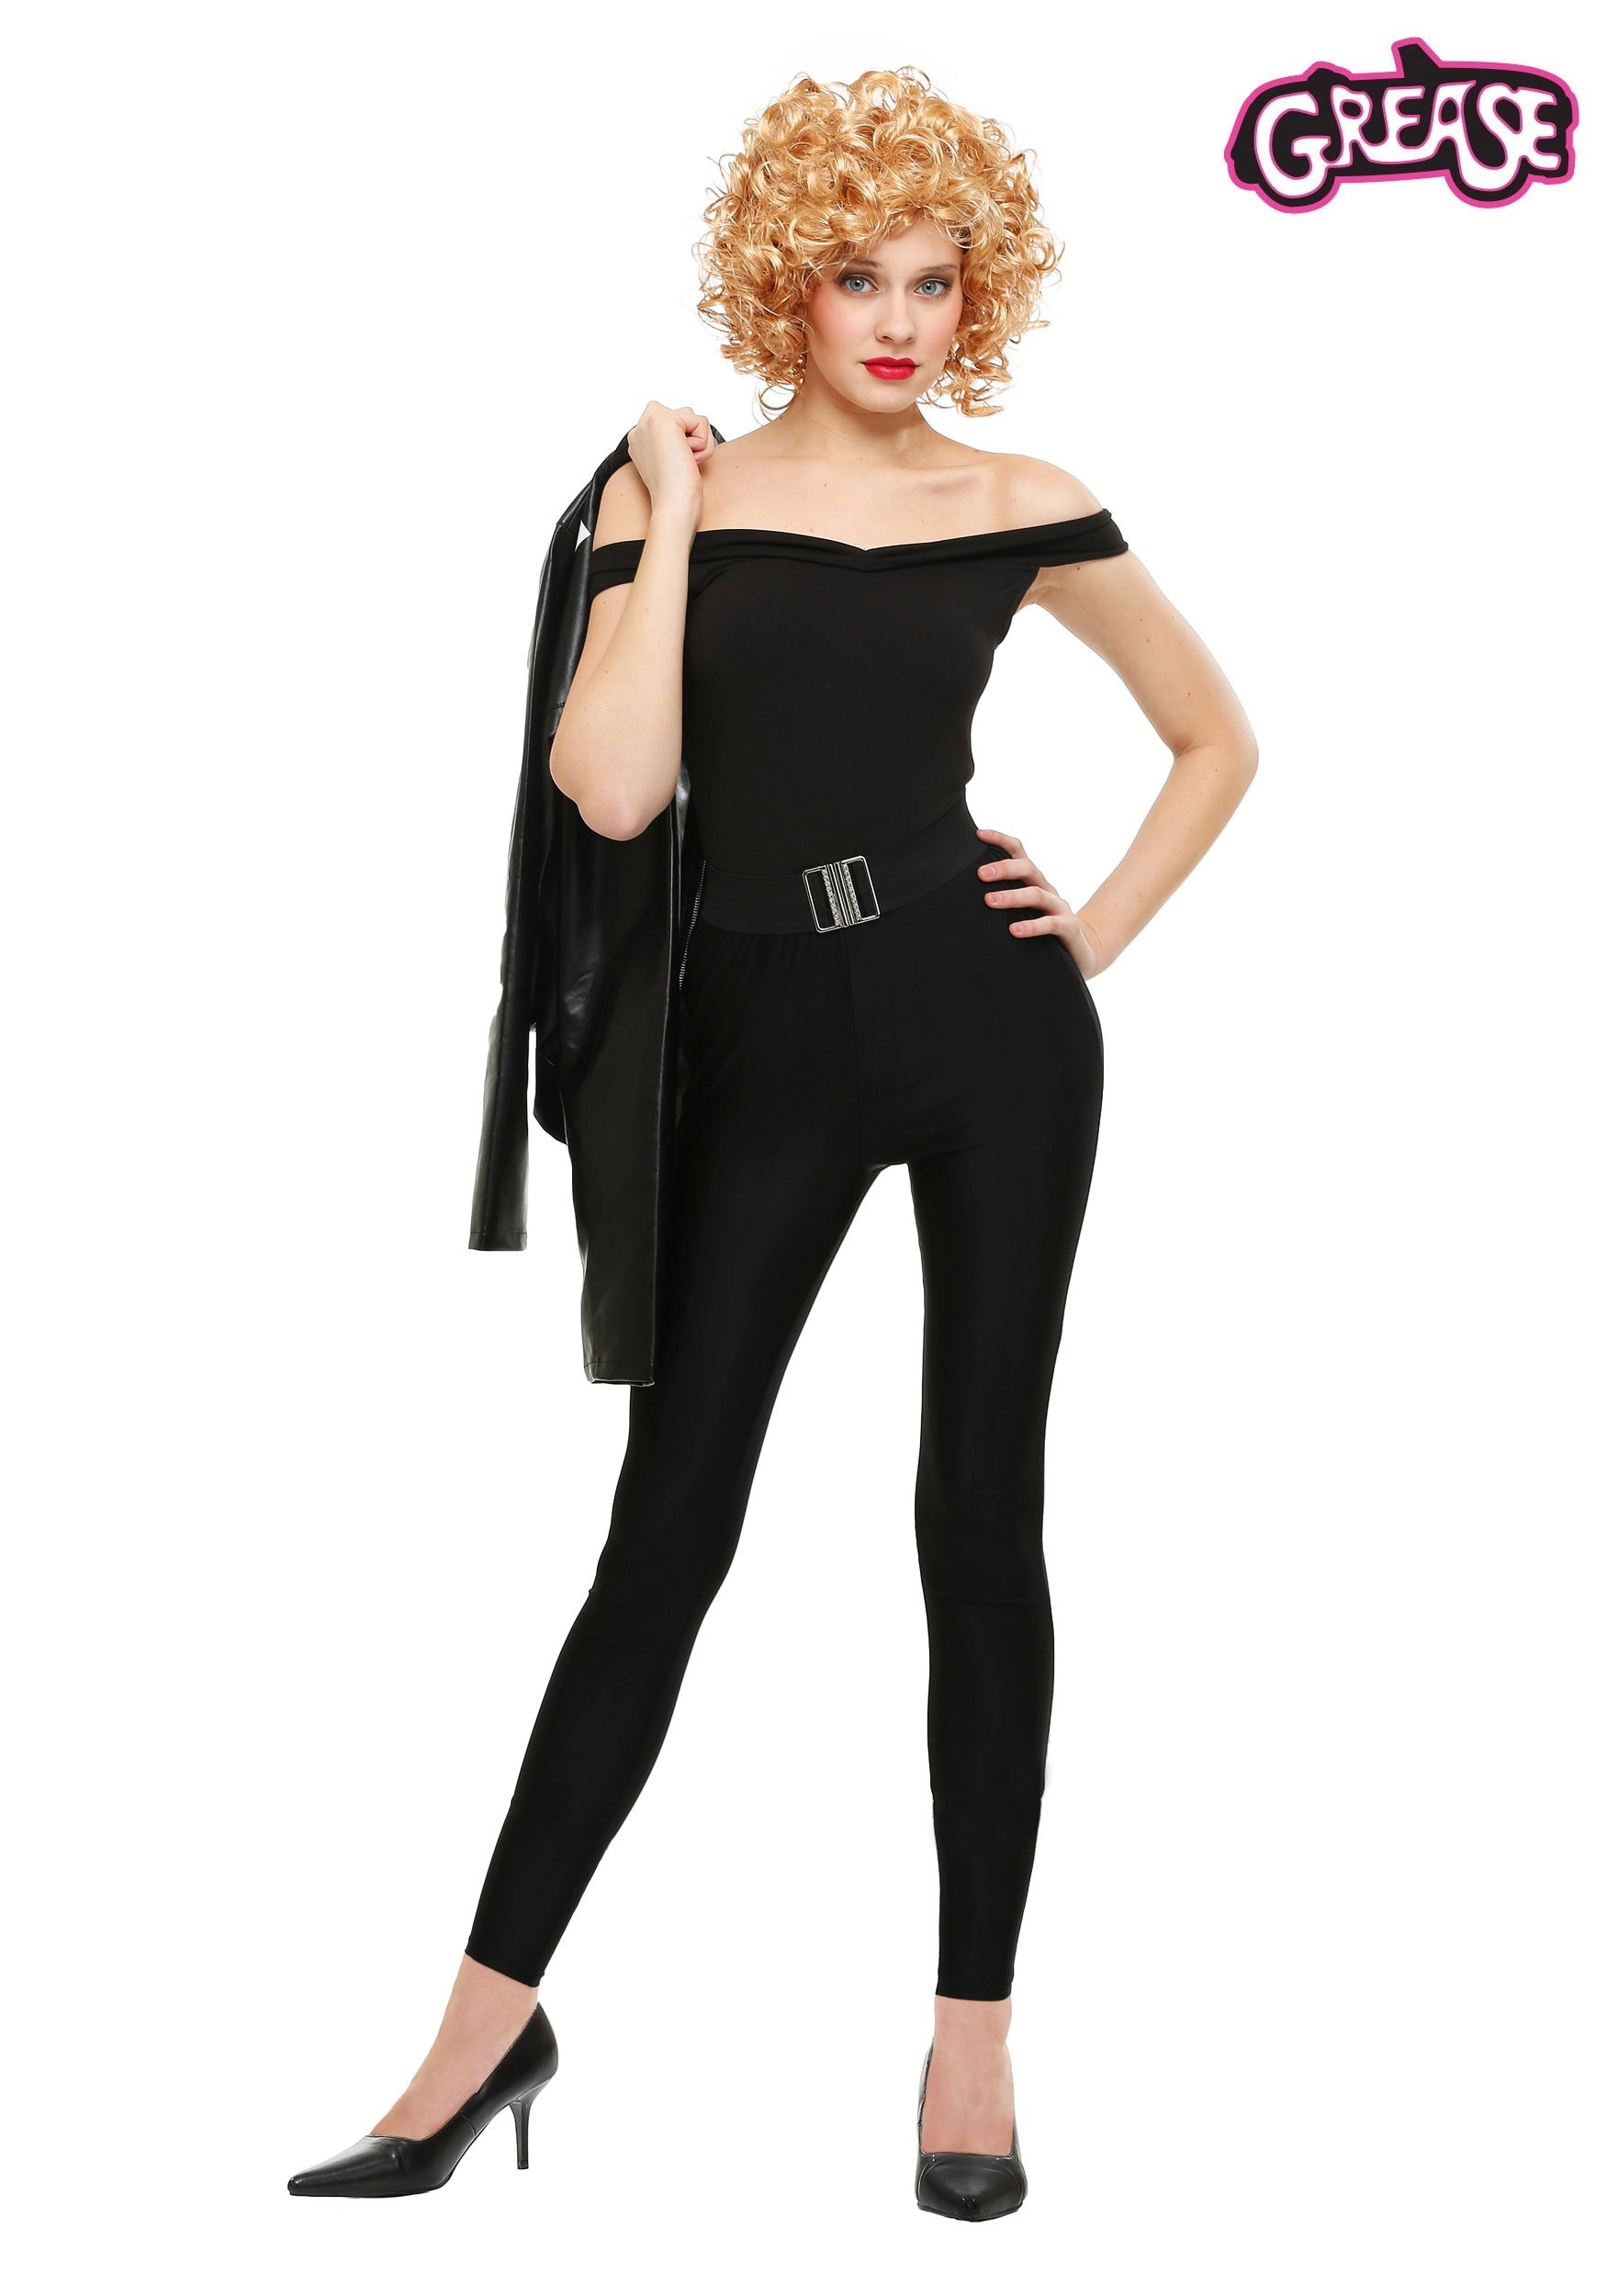 Verbazingwekkend Grease Sandy Costume (Bad Sandy) GF-19